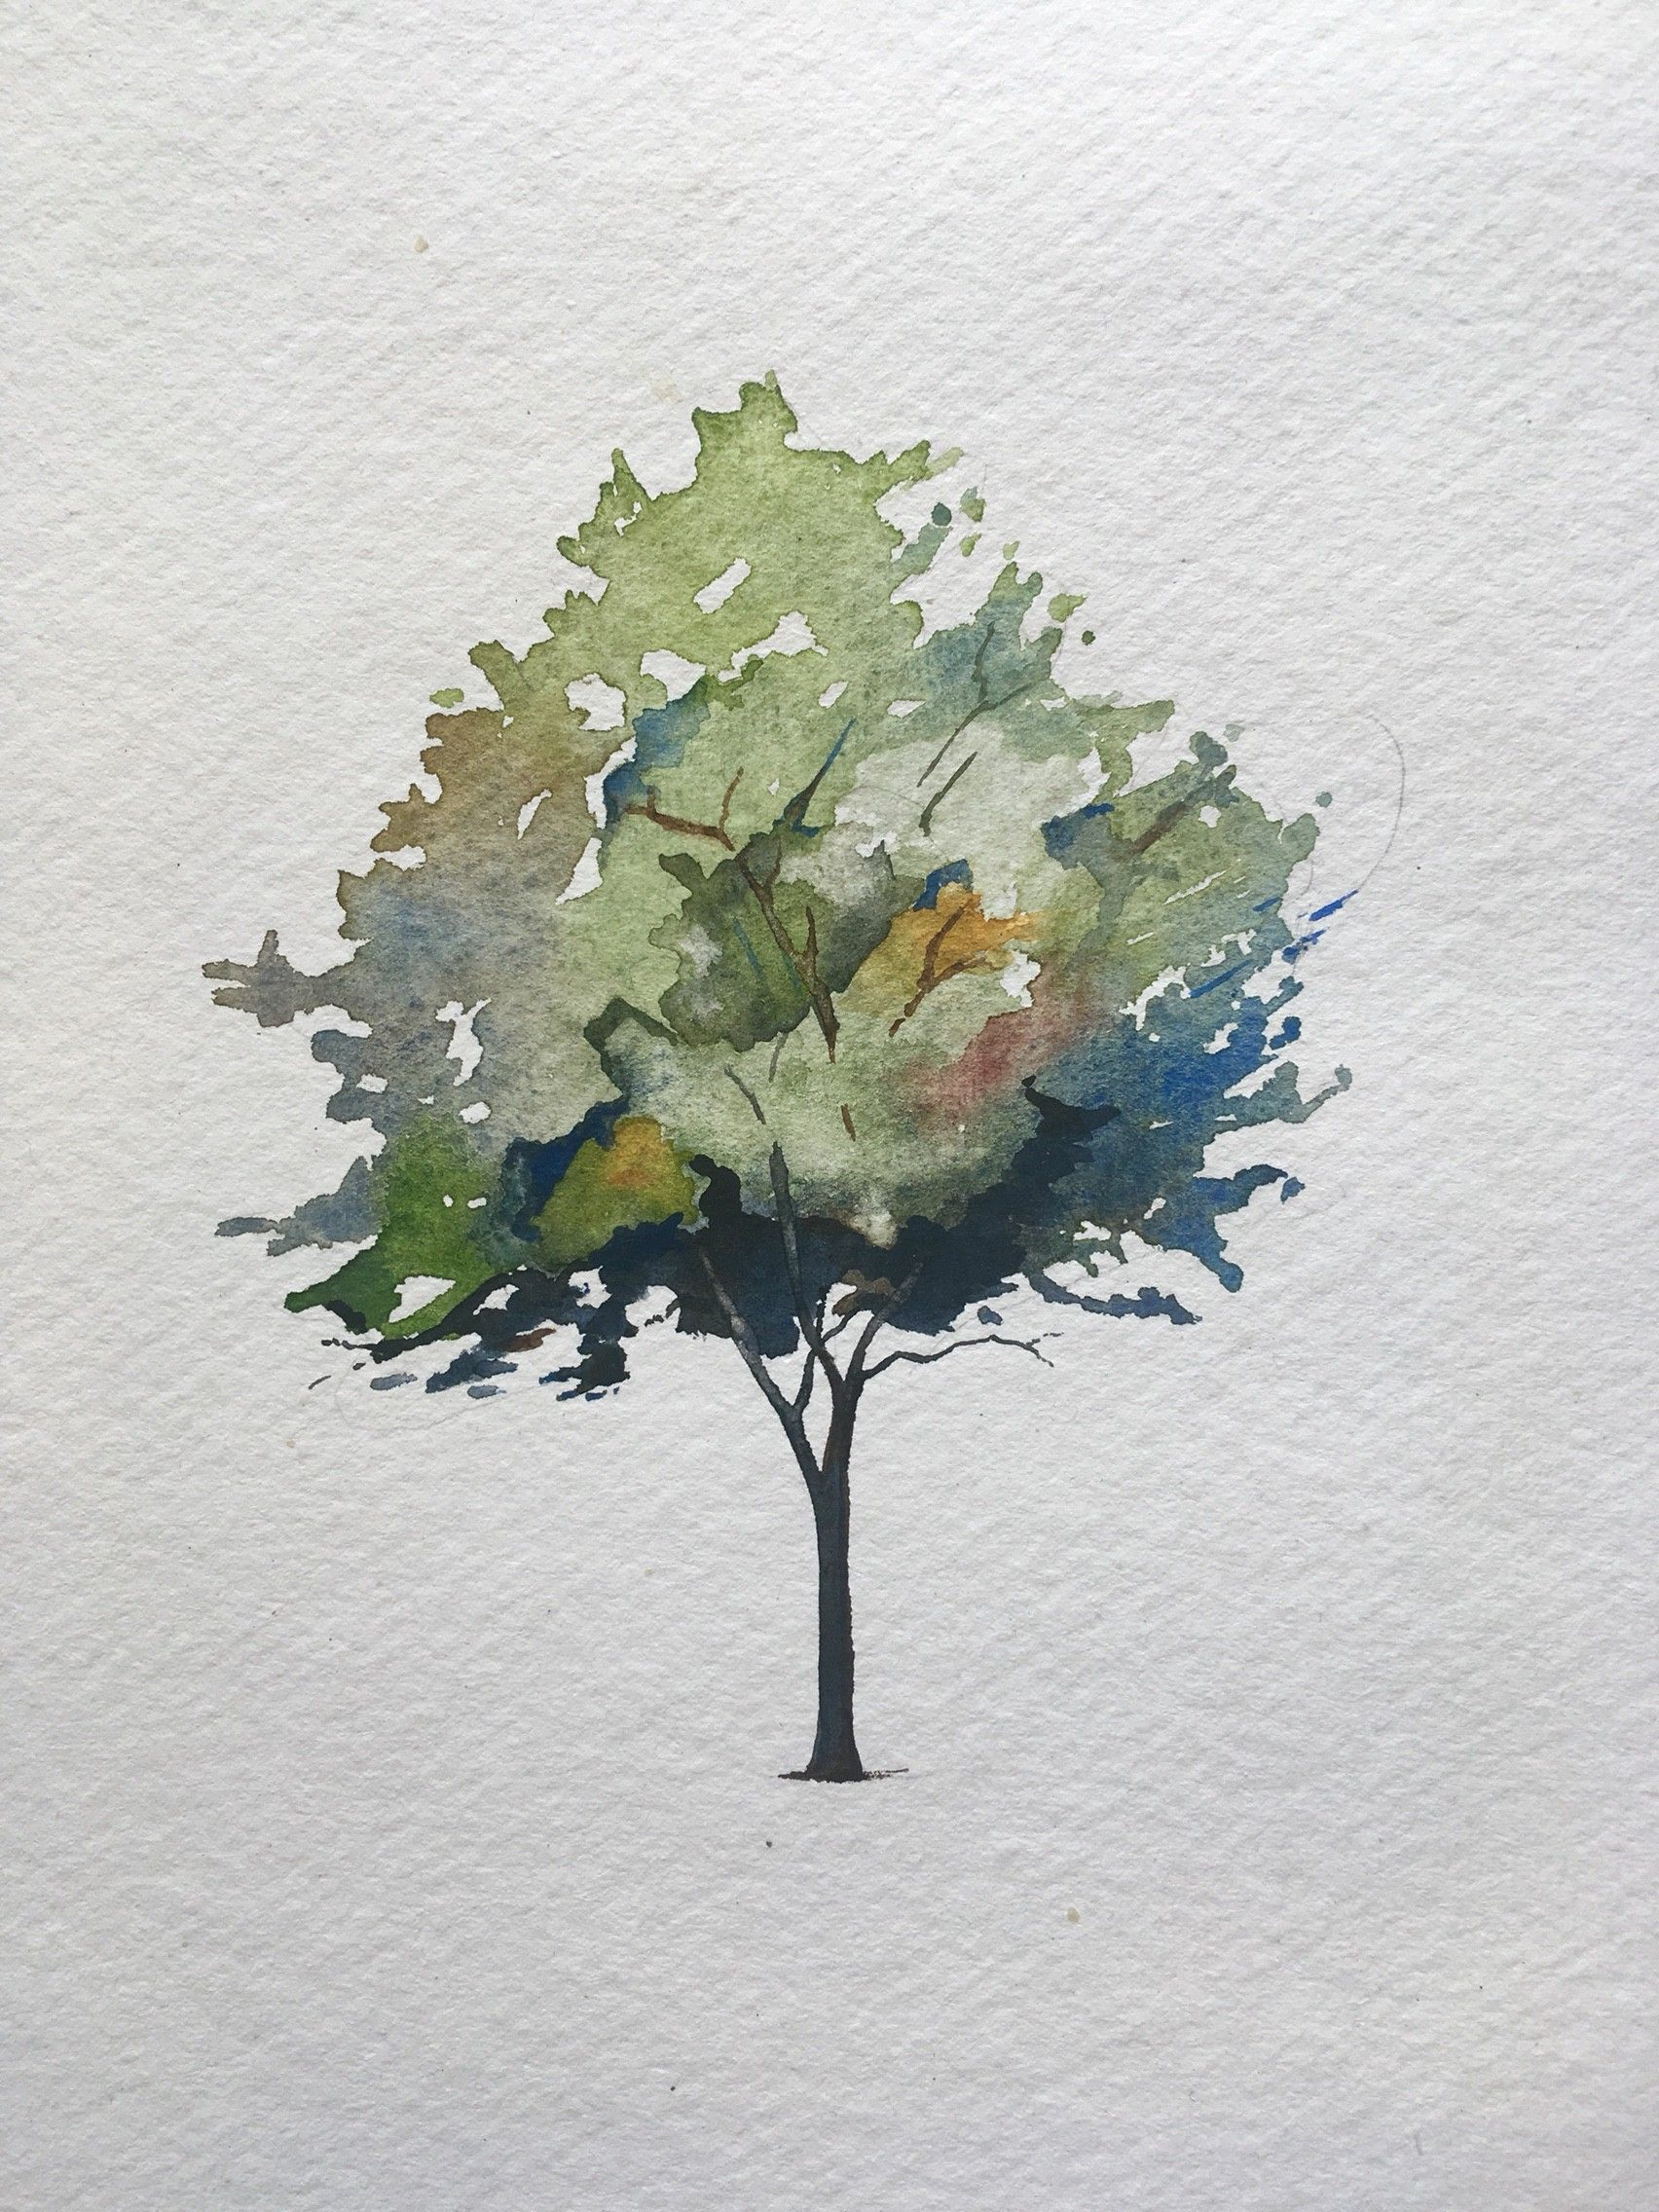 How To Paint A Tree In Watercolors Painting Watercolor